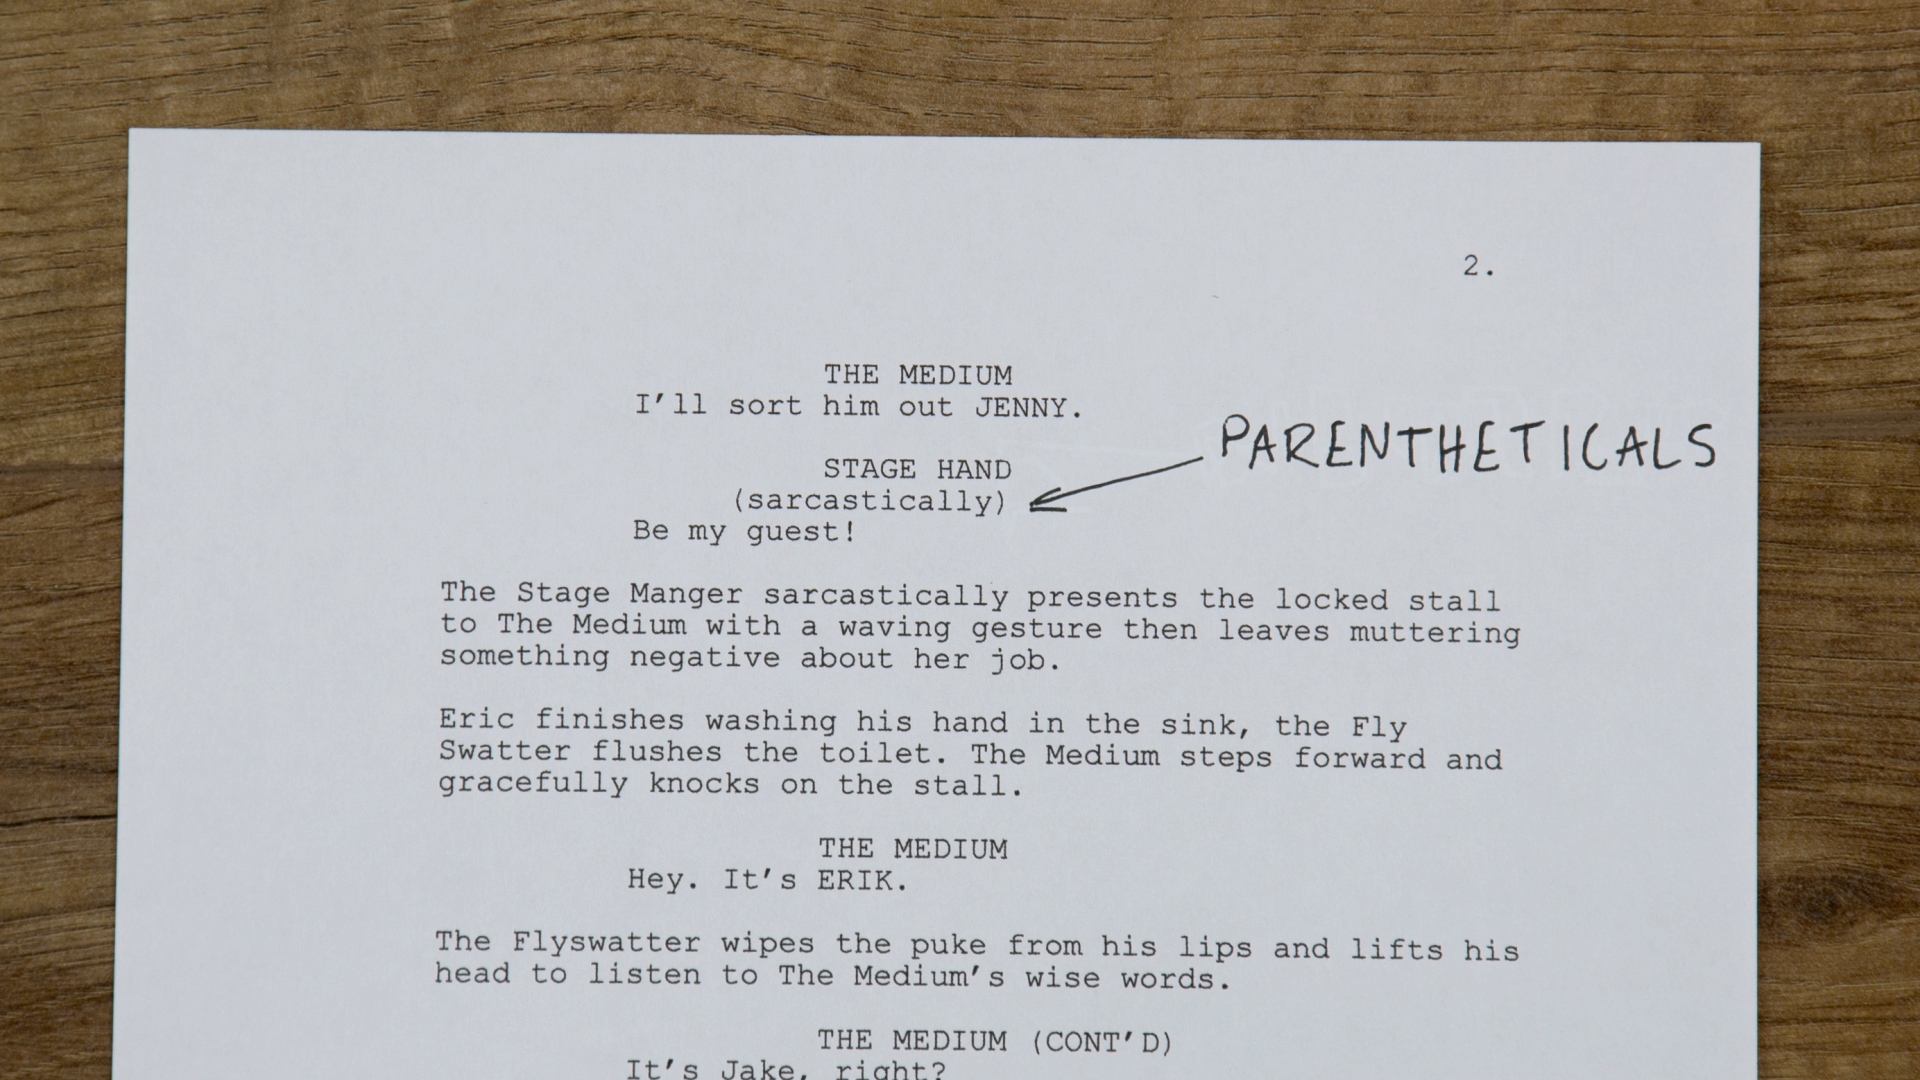 Screenplay - Parentheticals.jpg